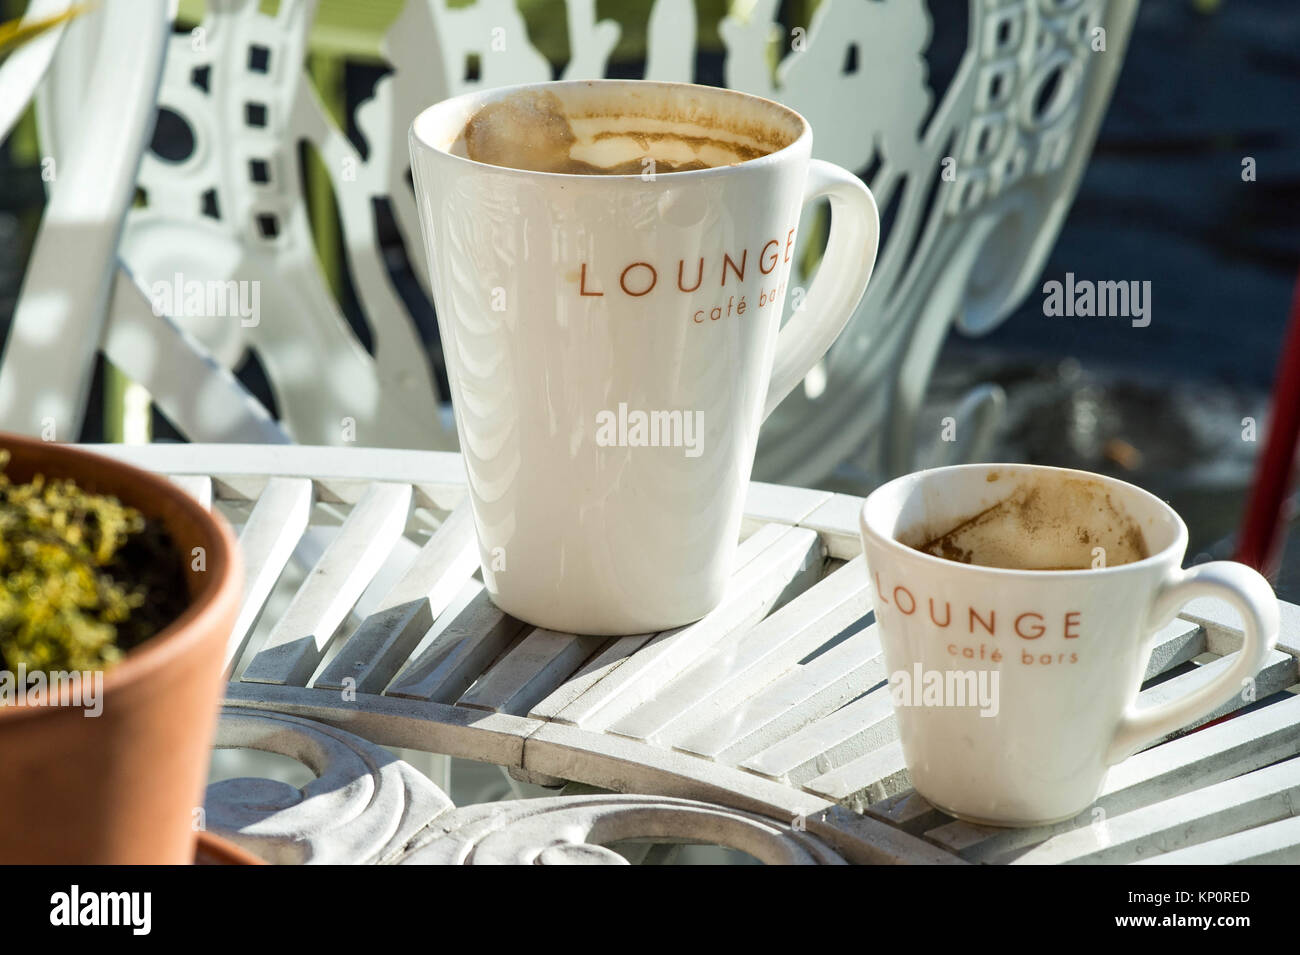 Mug of Coffee on a White Iron Outside Table Top In a Restaurant or a Garden - Stock Image